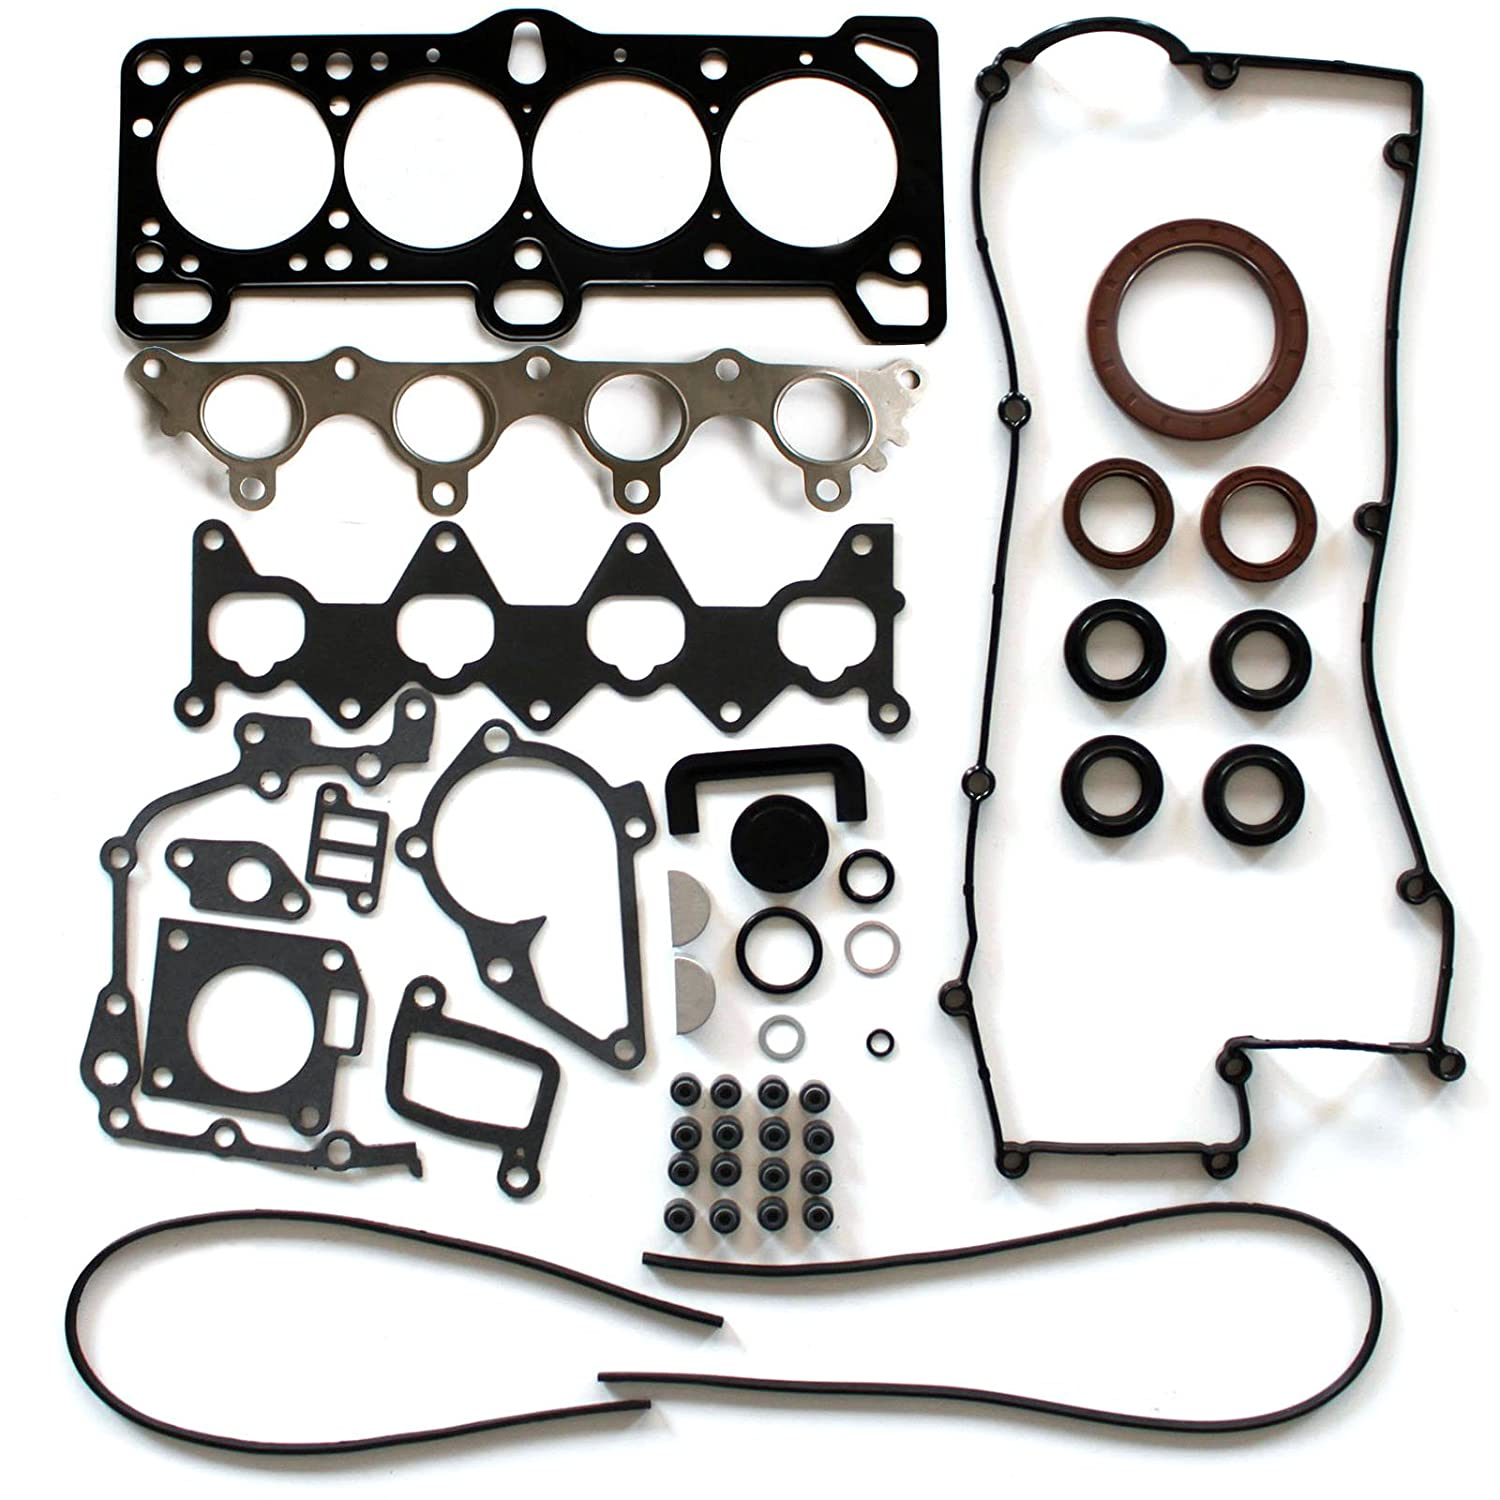 amazon eccpp head gasket set for 06 11 hyundai accent kia rio Chevy High Performance 4.3 Engines amazon eccpp head gasket set for 06 11 hyundai accent kia rio rio5 dohc 16v vin c engine head gasket automotive